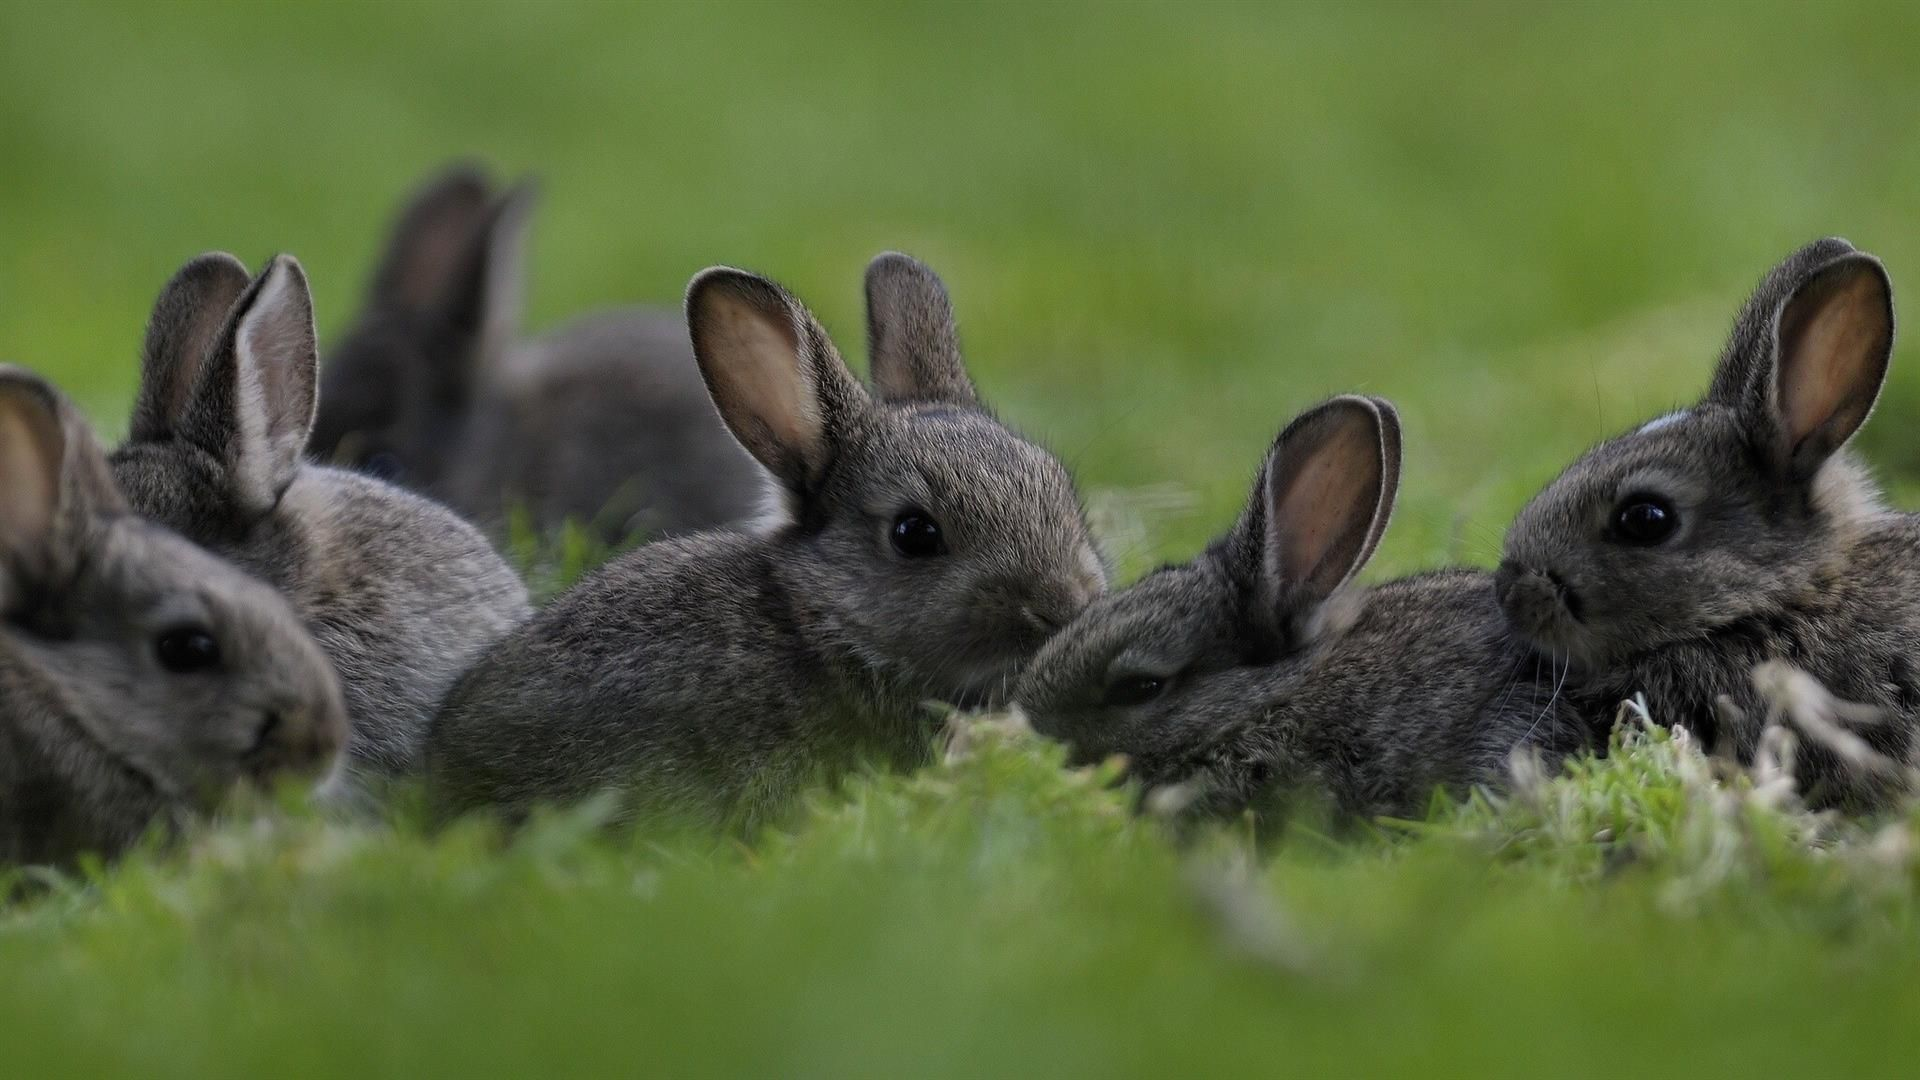 Pictures Of The Hare With Leverets